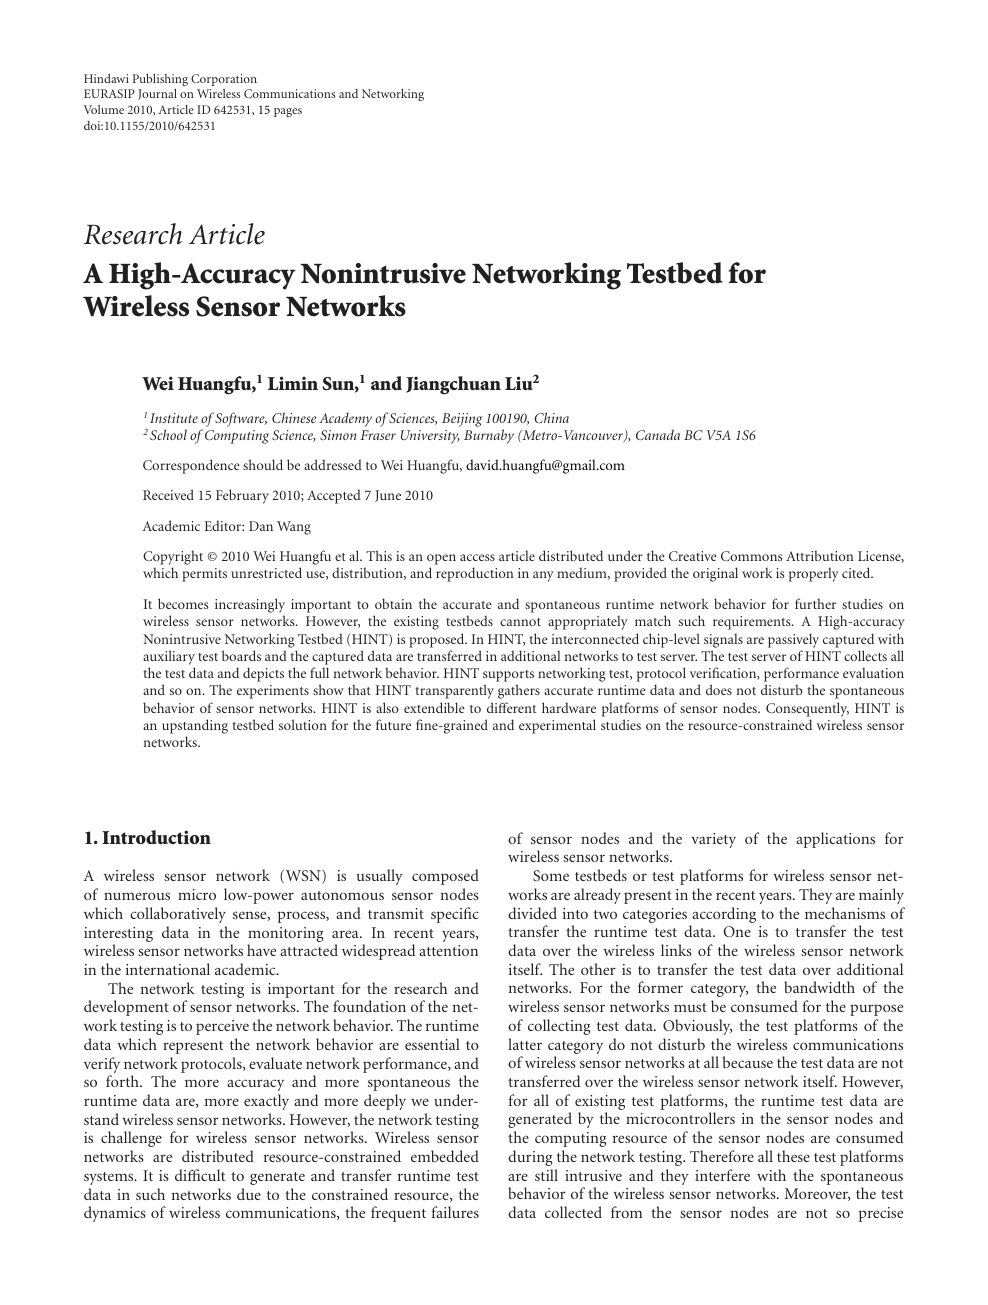 A High-Accuracy Nonintrusive Networking Testbed for Wireless Sensor